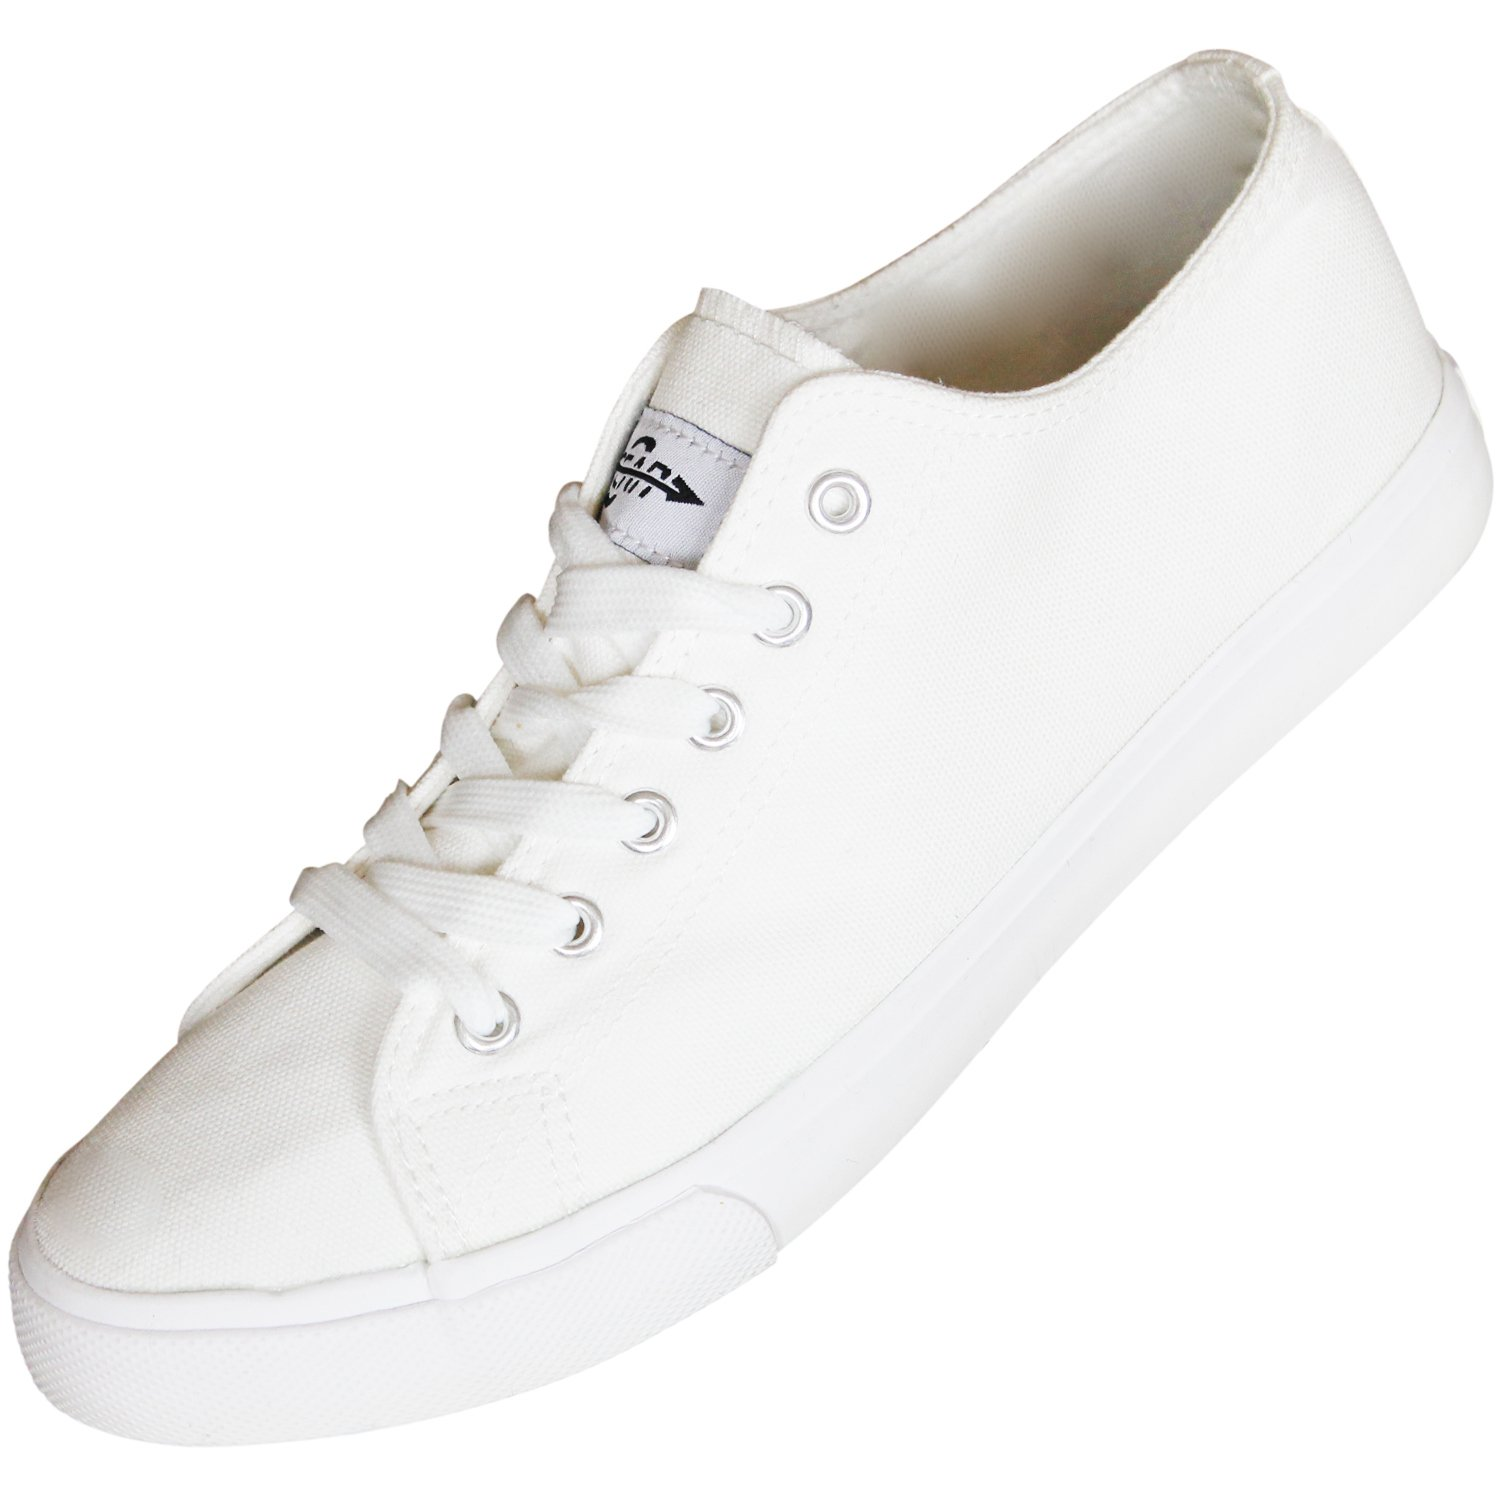 Fear0 Unisex True to Size All White Casual Canvas Sneakers Shoes Womens 7 B(M) US Women